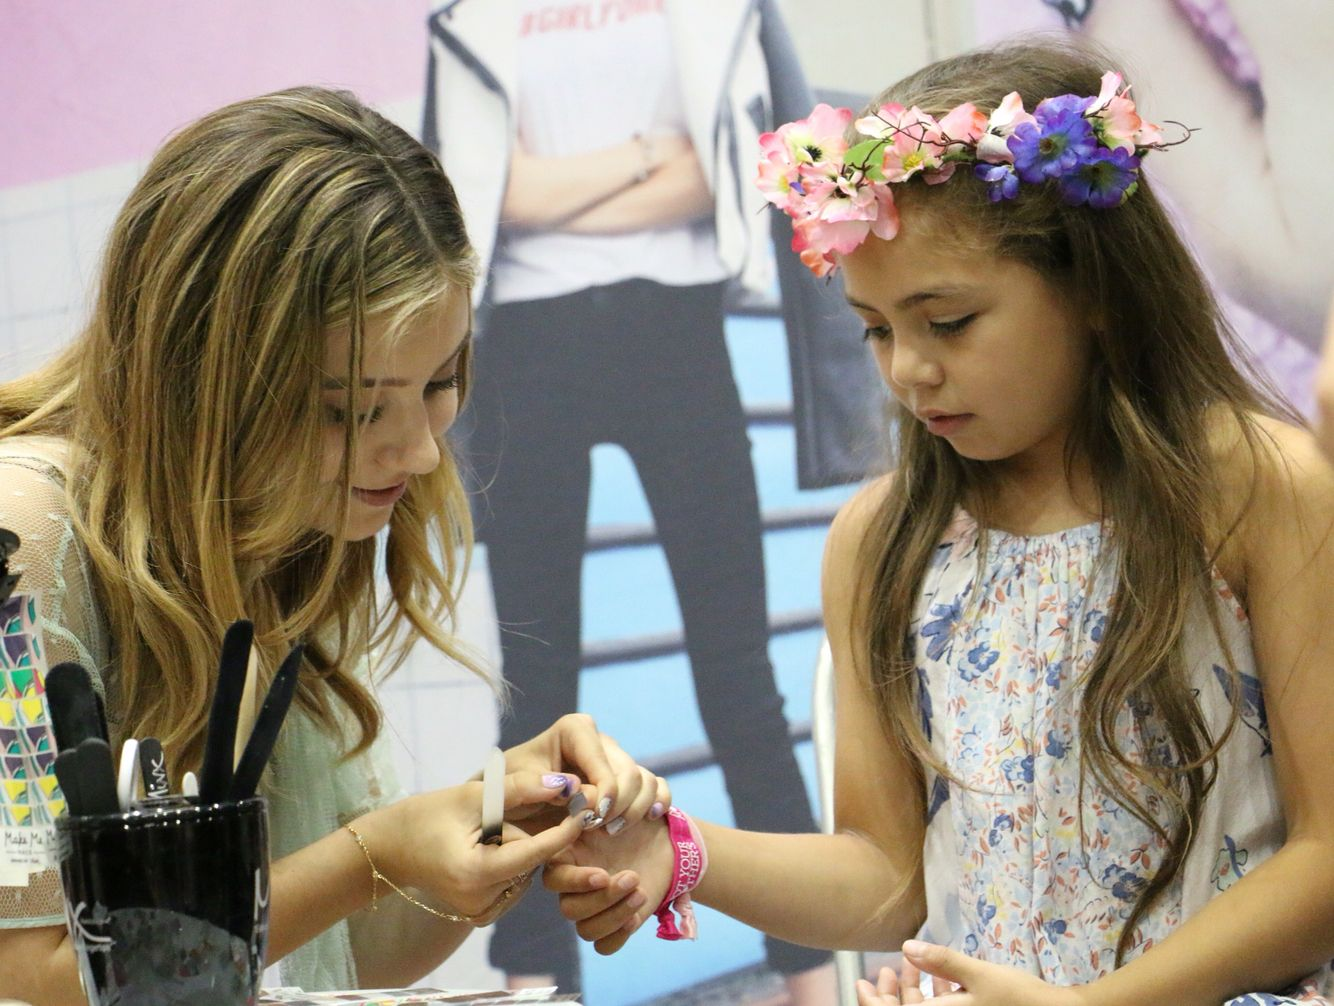 Accent nails wraps, flower crowns, and smiles all around this ...